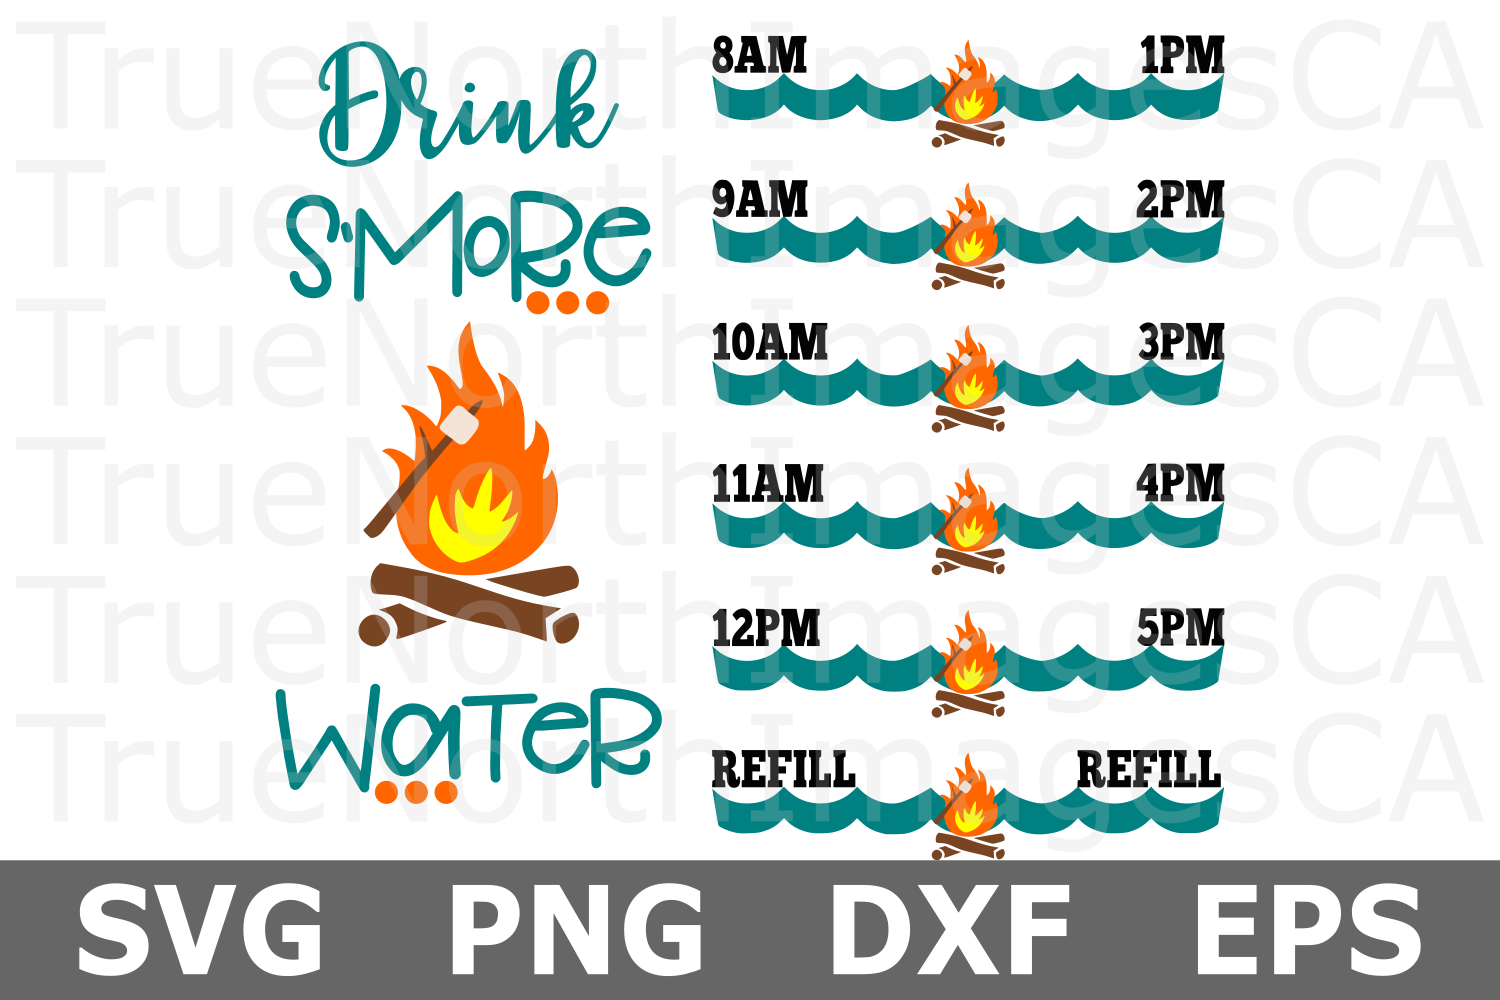 Drink S'more Water - A Camping Water Tracker SVG File example image 1